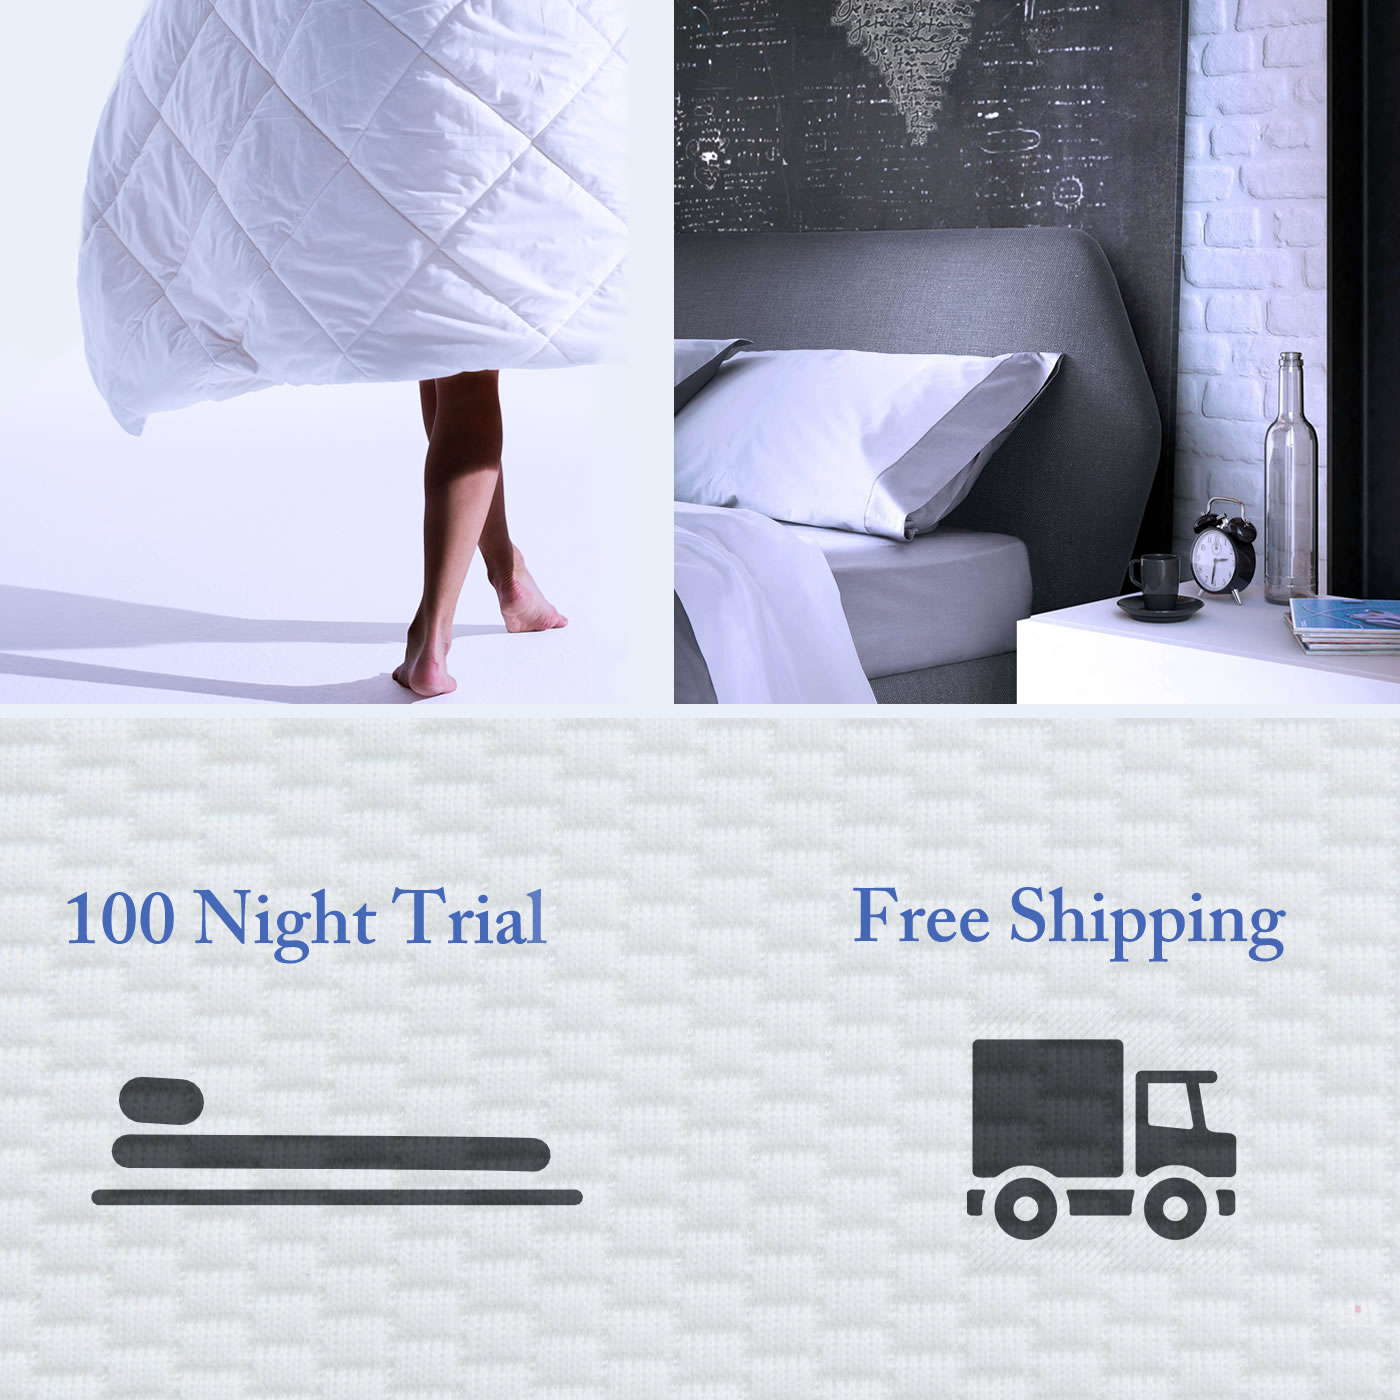 a Sleep AWESOMENESS mattress is so good and comes with 100 days in-home trial, Free Shipping plus a 10 year warranty